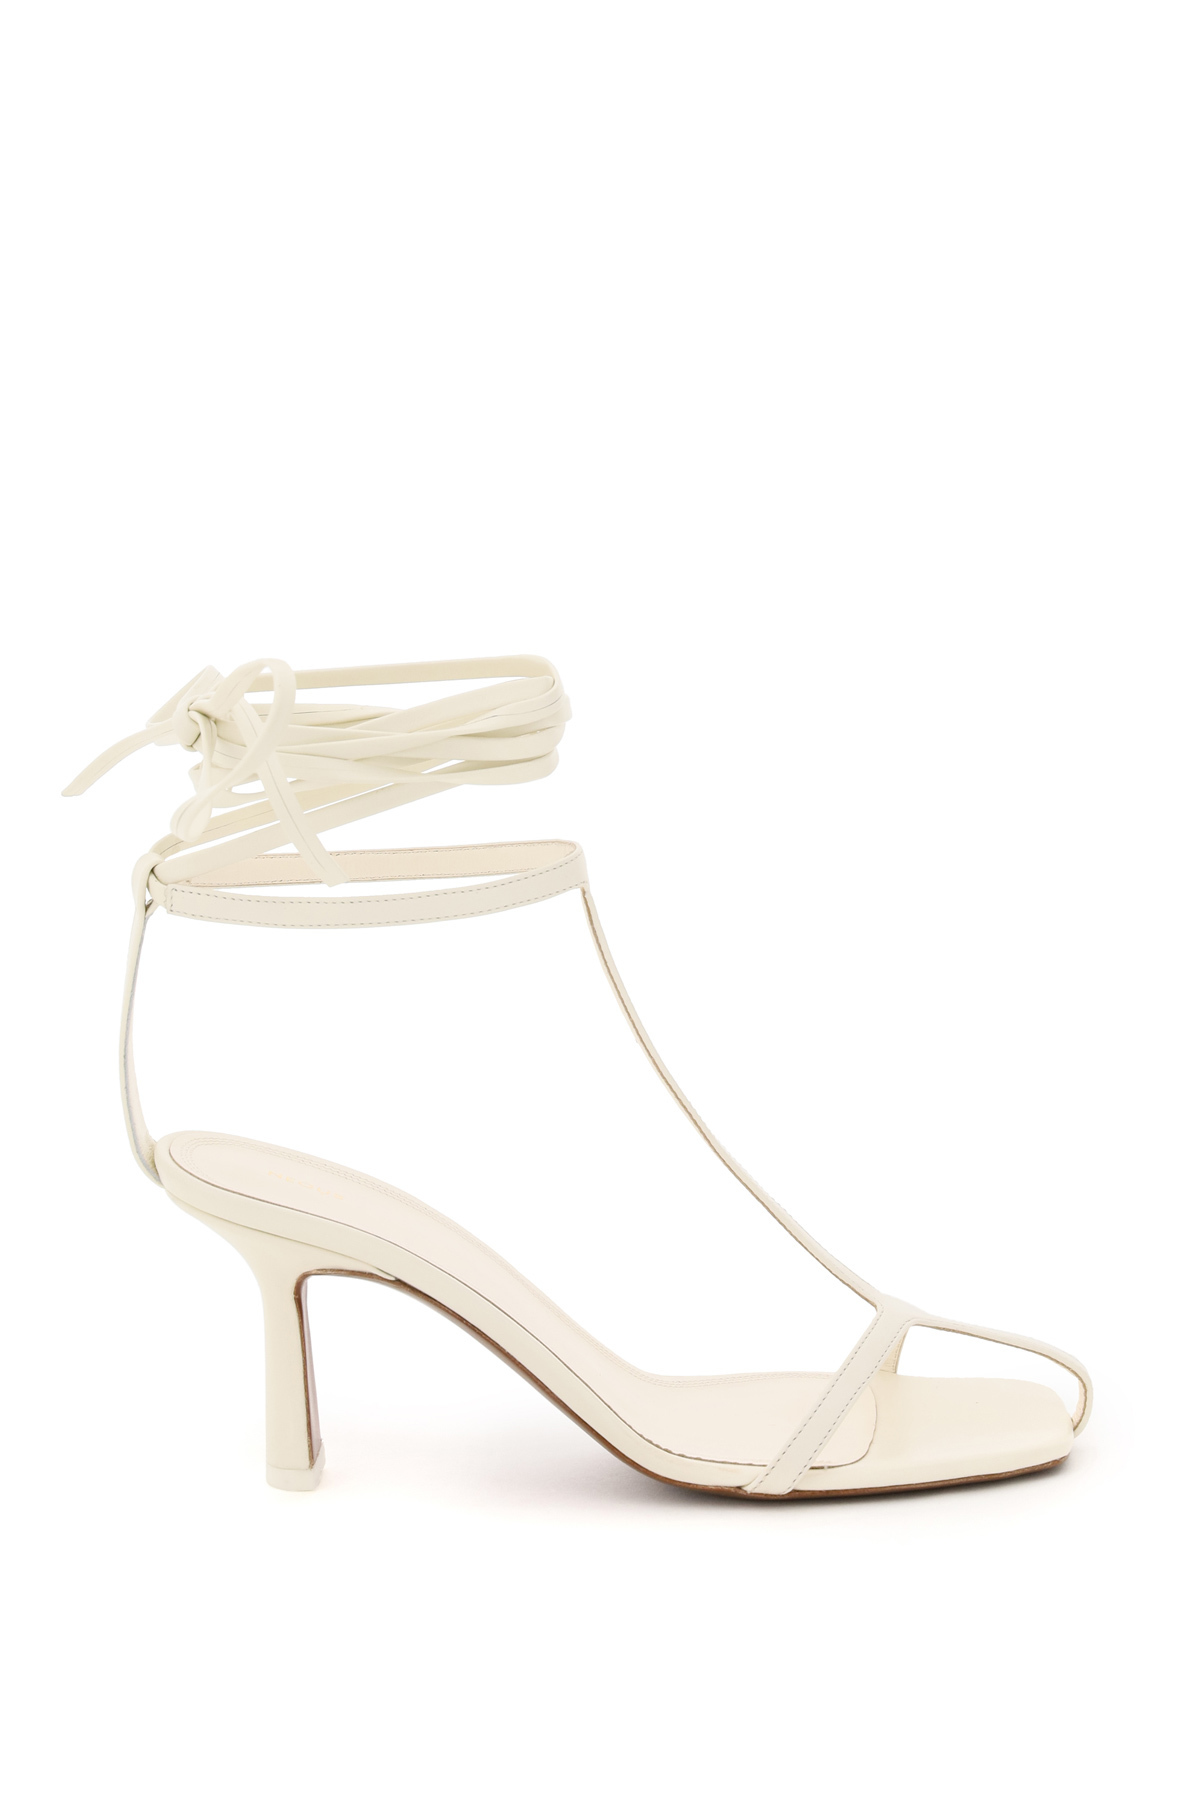 Neous ANTHUS LEATHER SANDALS